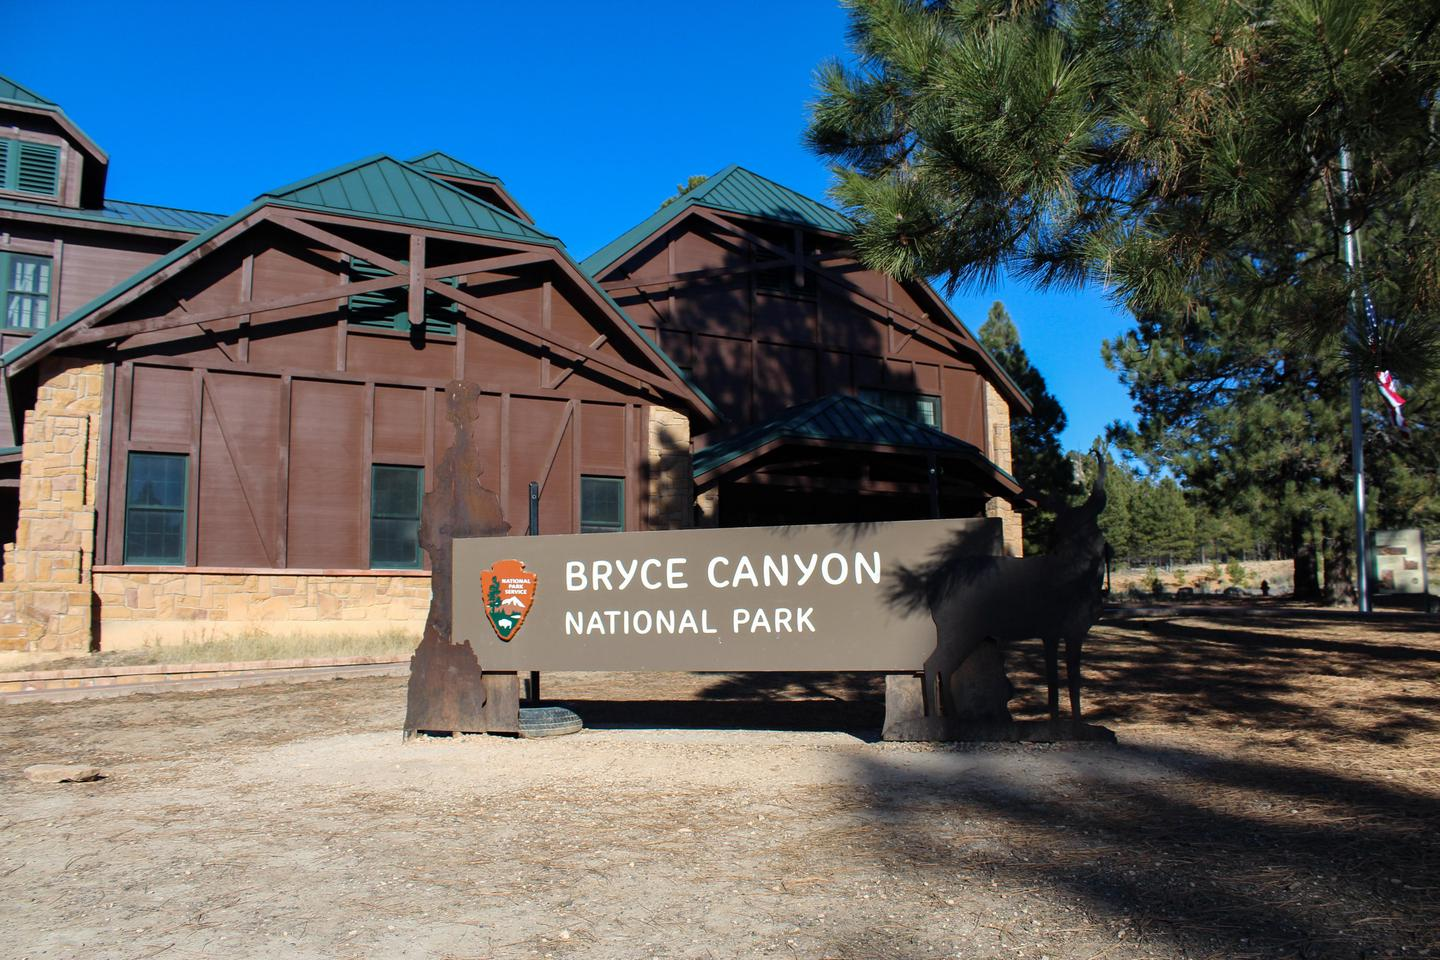 Bryce Canyon Visitor CenterThe park Visitor Center is located 1 mile past the park entrance and is open most days at 8 a.m.